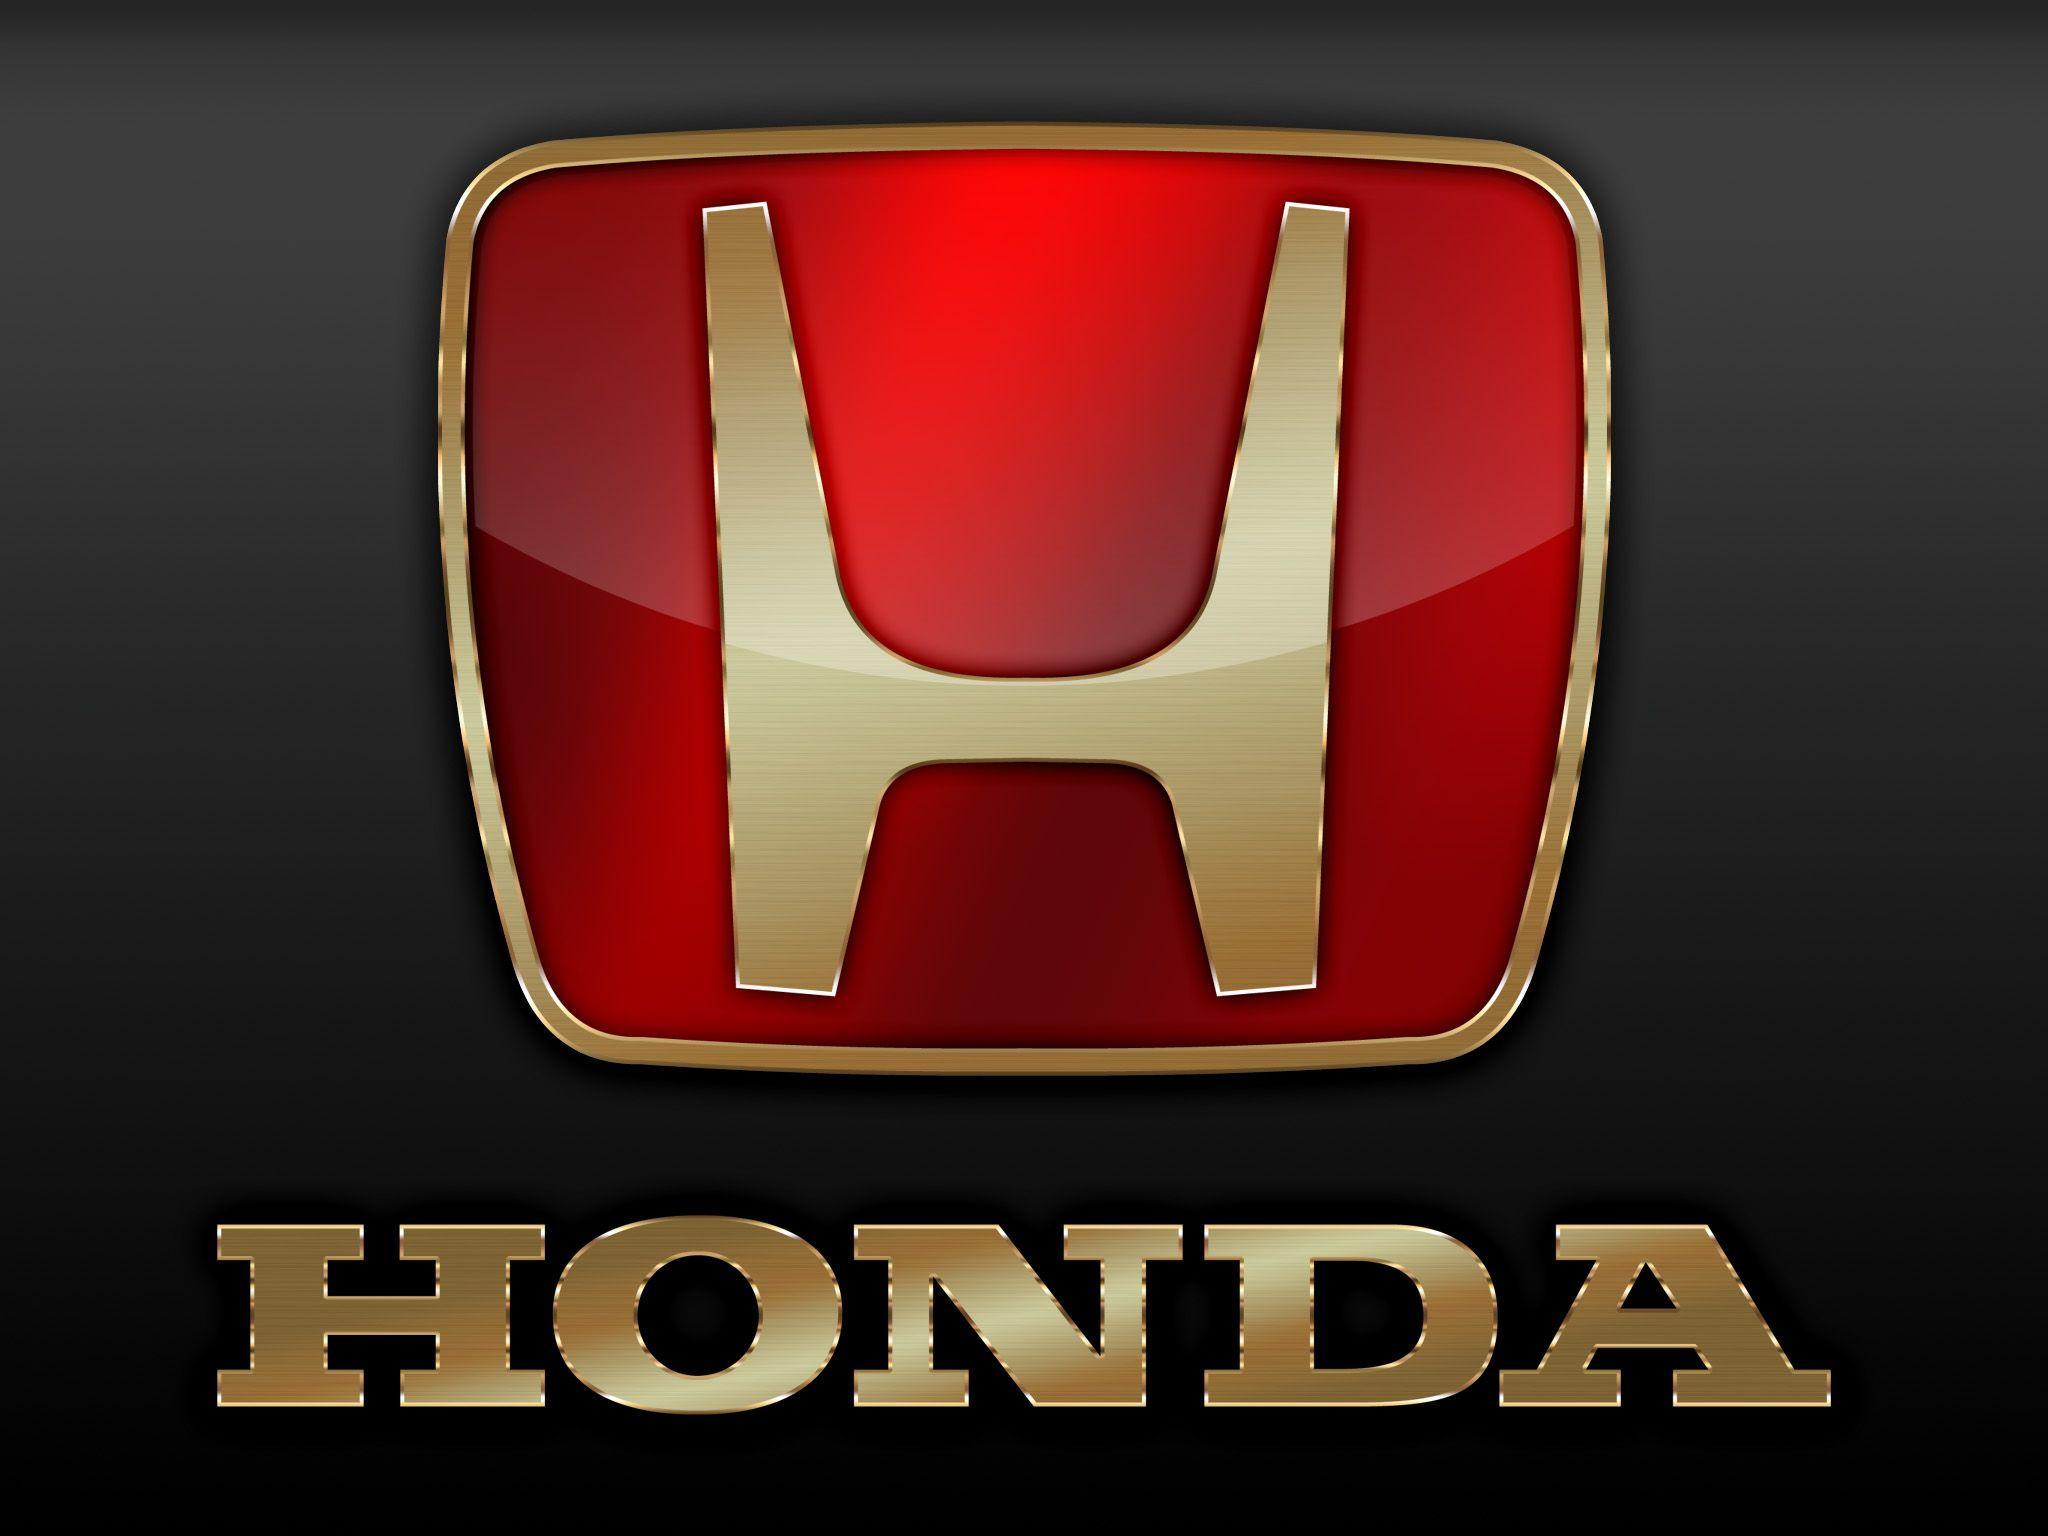 civic wallpaper honda symbol - photo #6